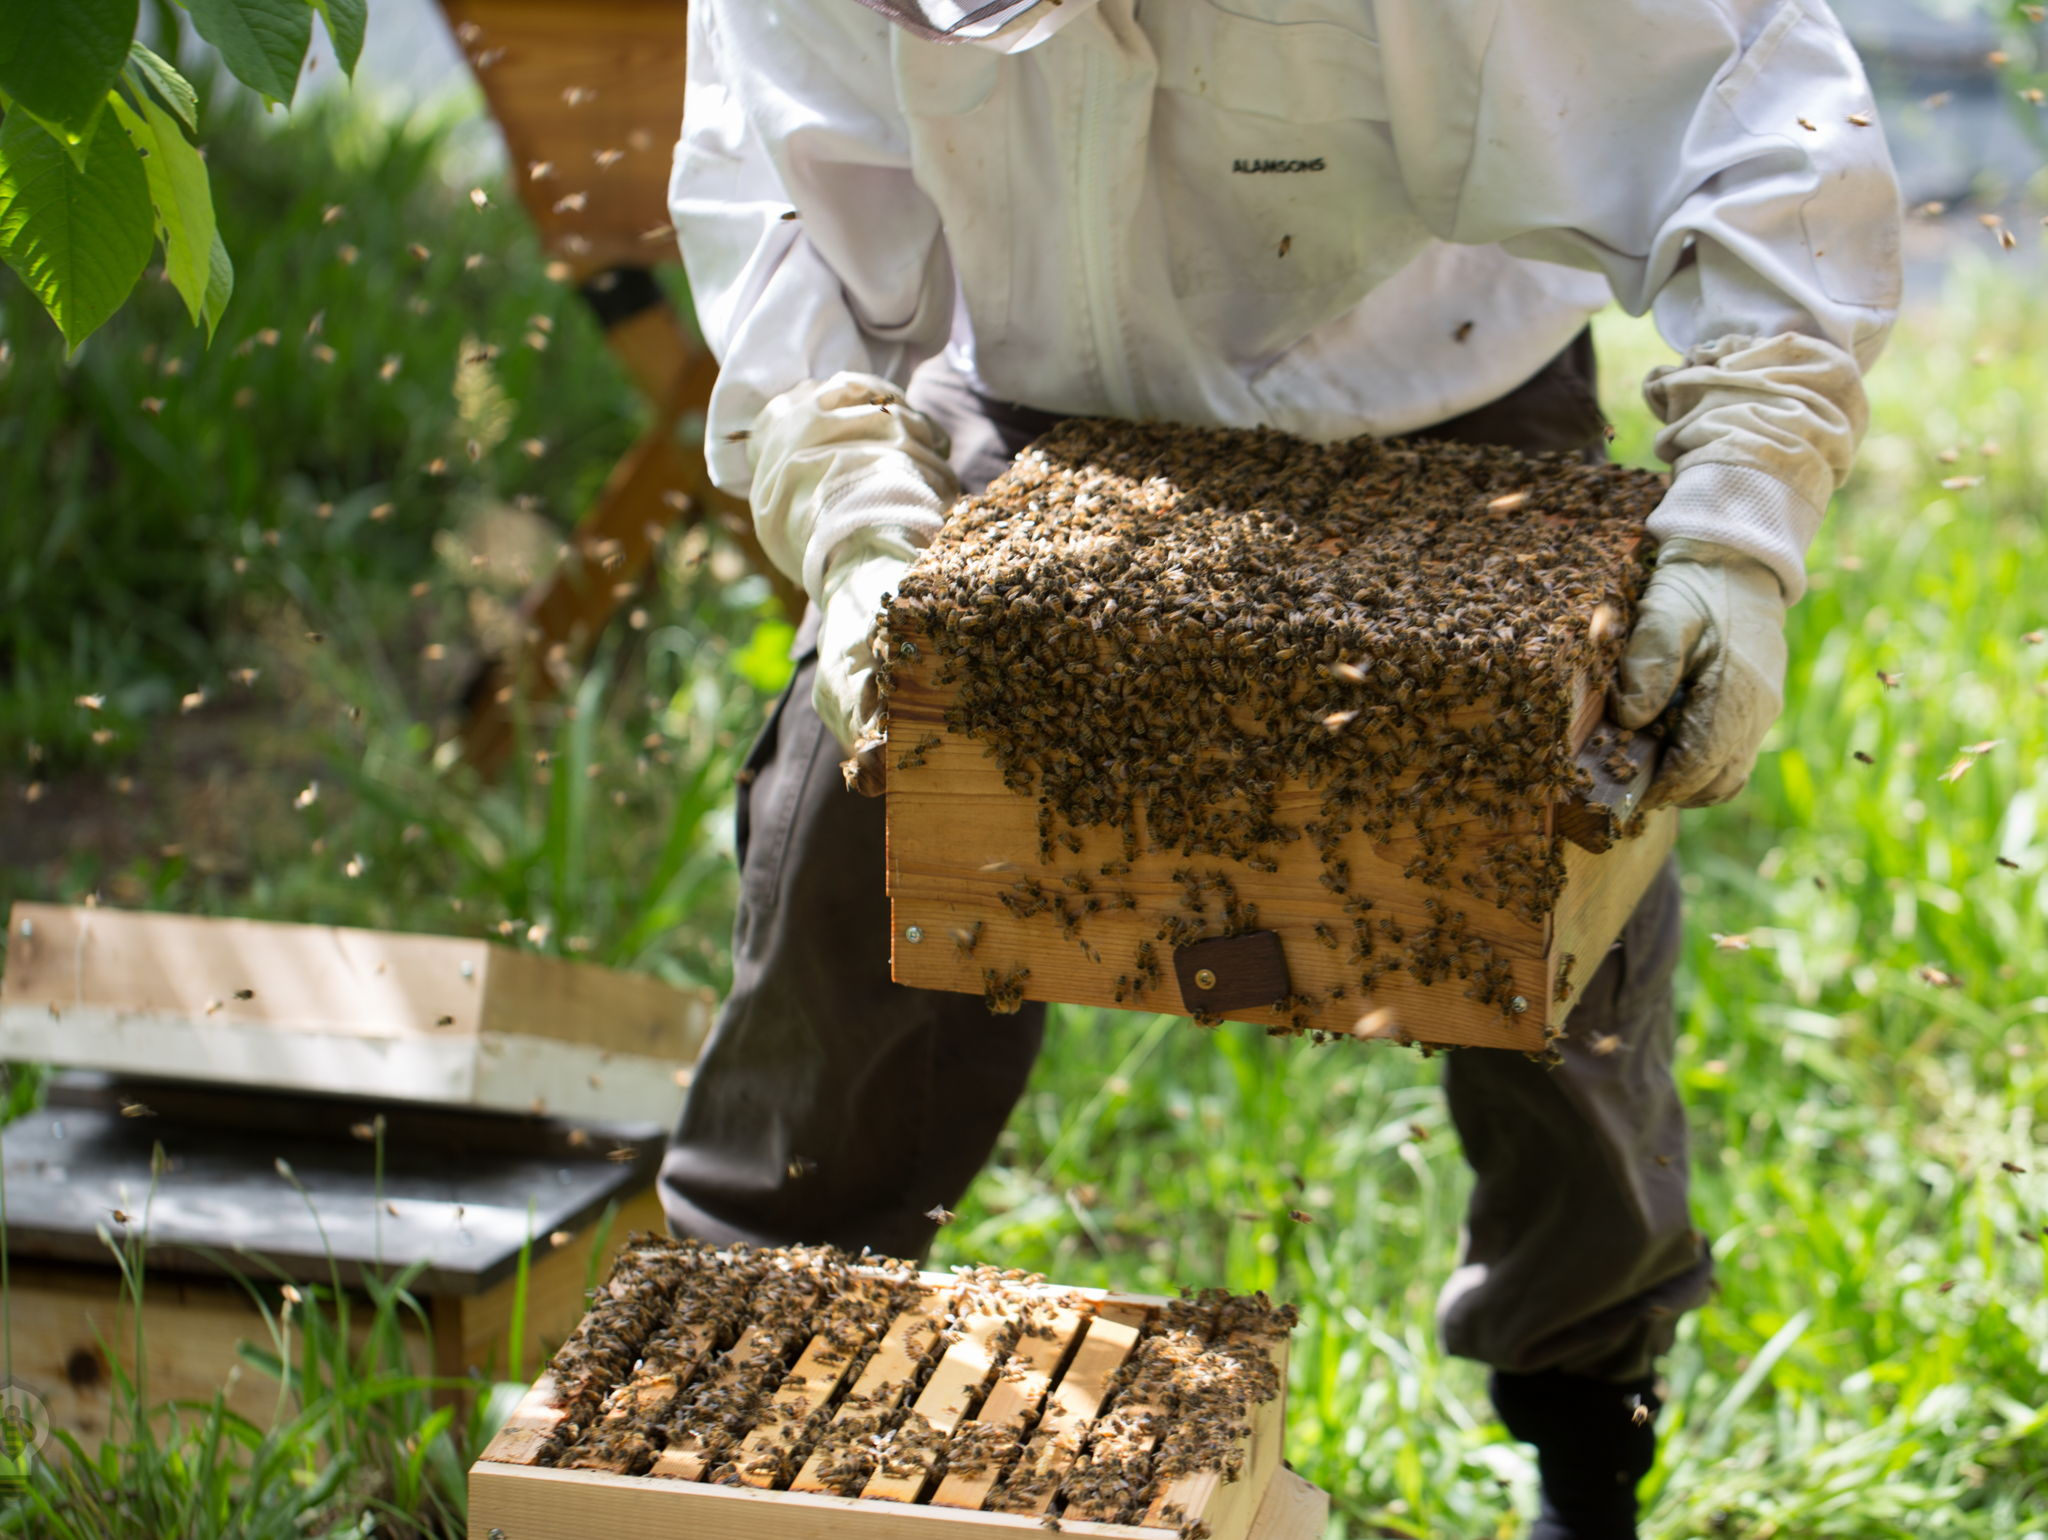 Beekeeping in nigeria 7 steps to start make good money practical training - Beekeeping beginners small business ...